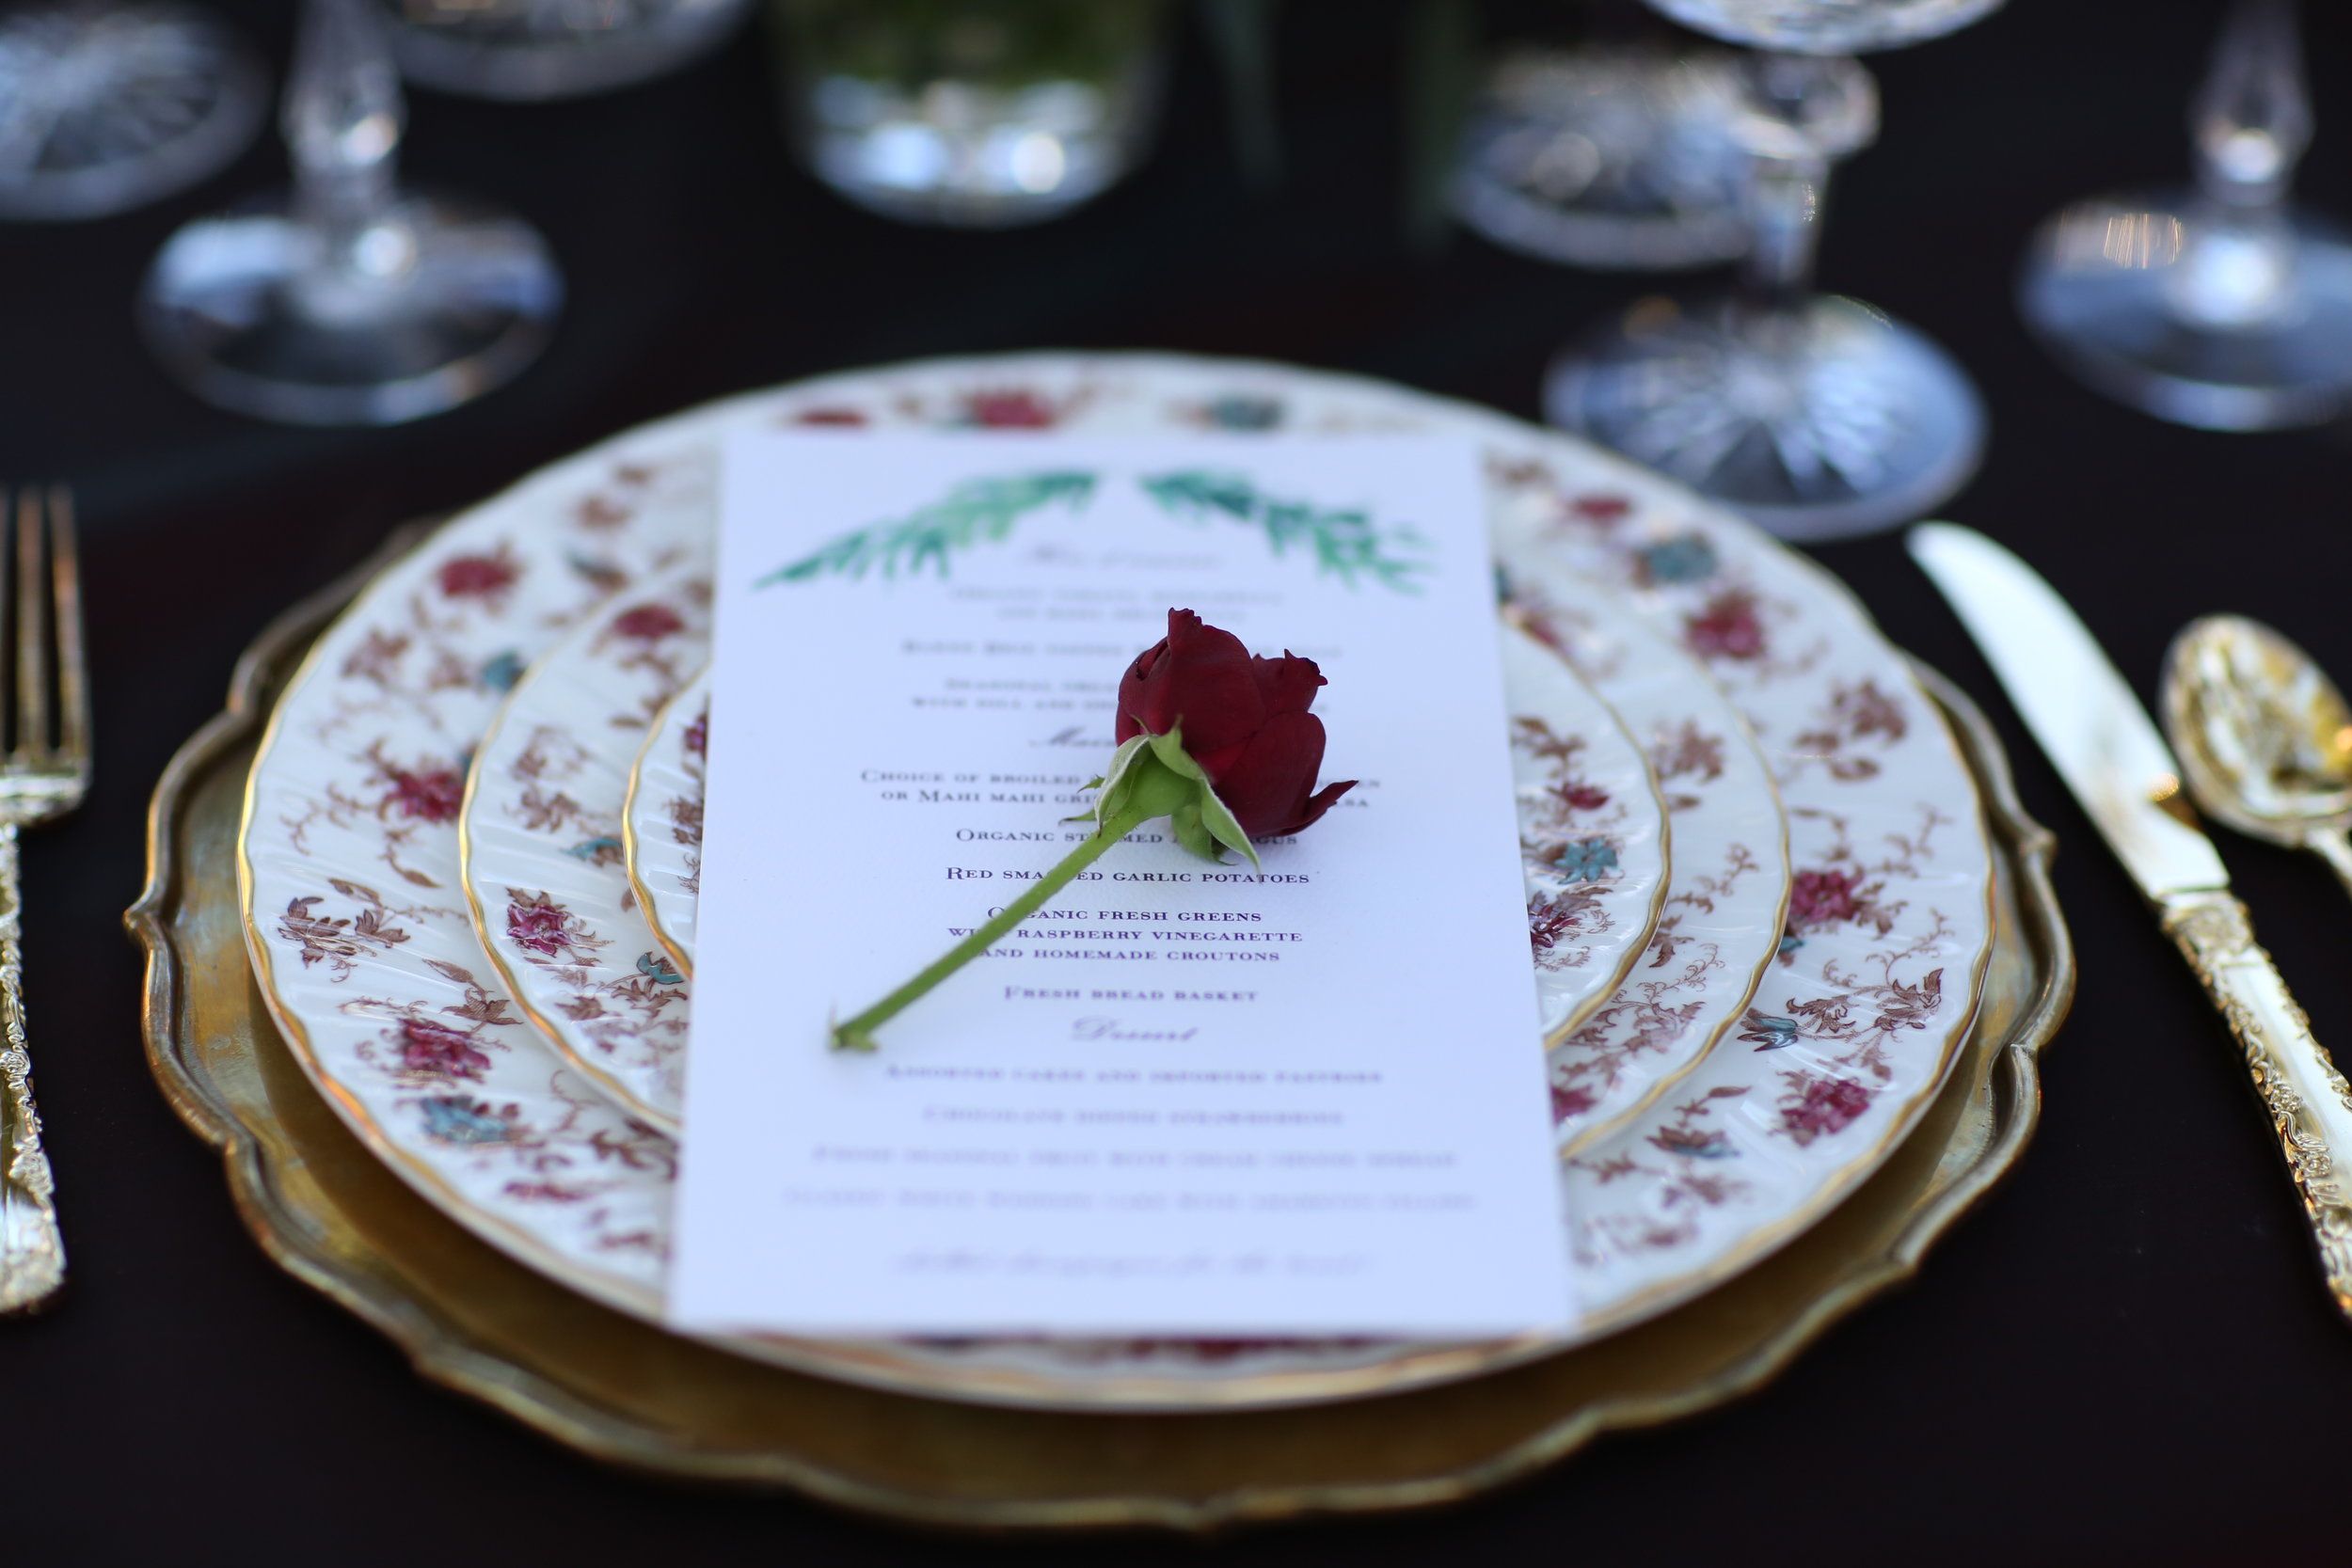 Brass charger plate anchoring the floral vintage china table setting during a wedding.